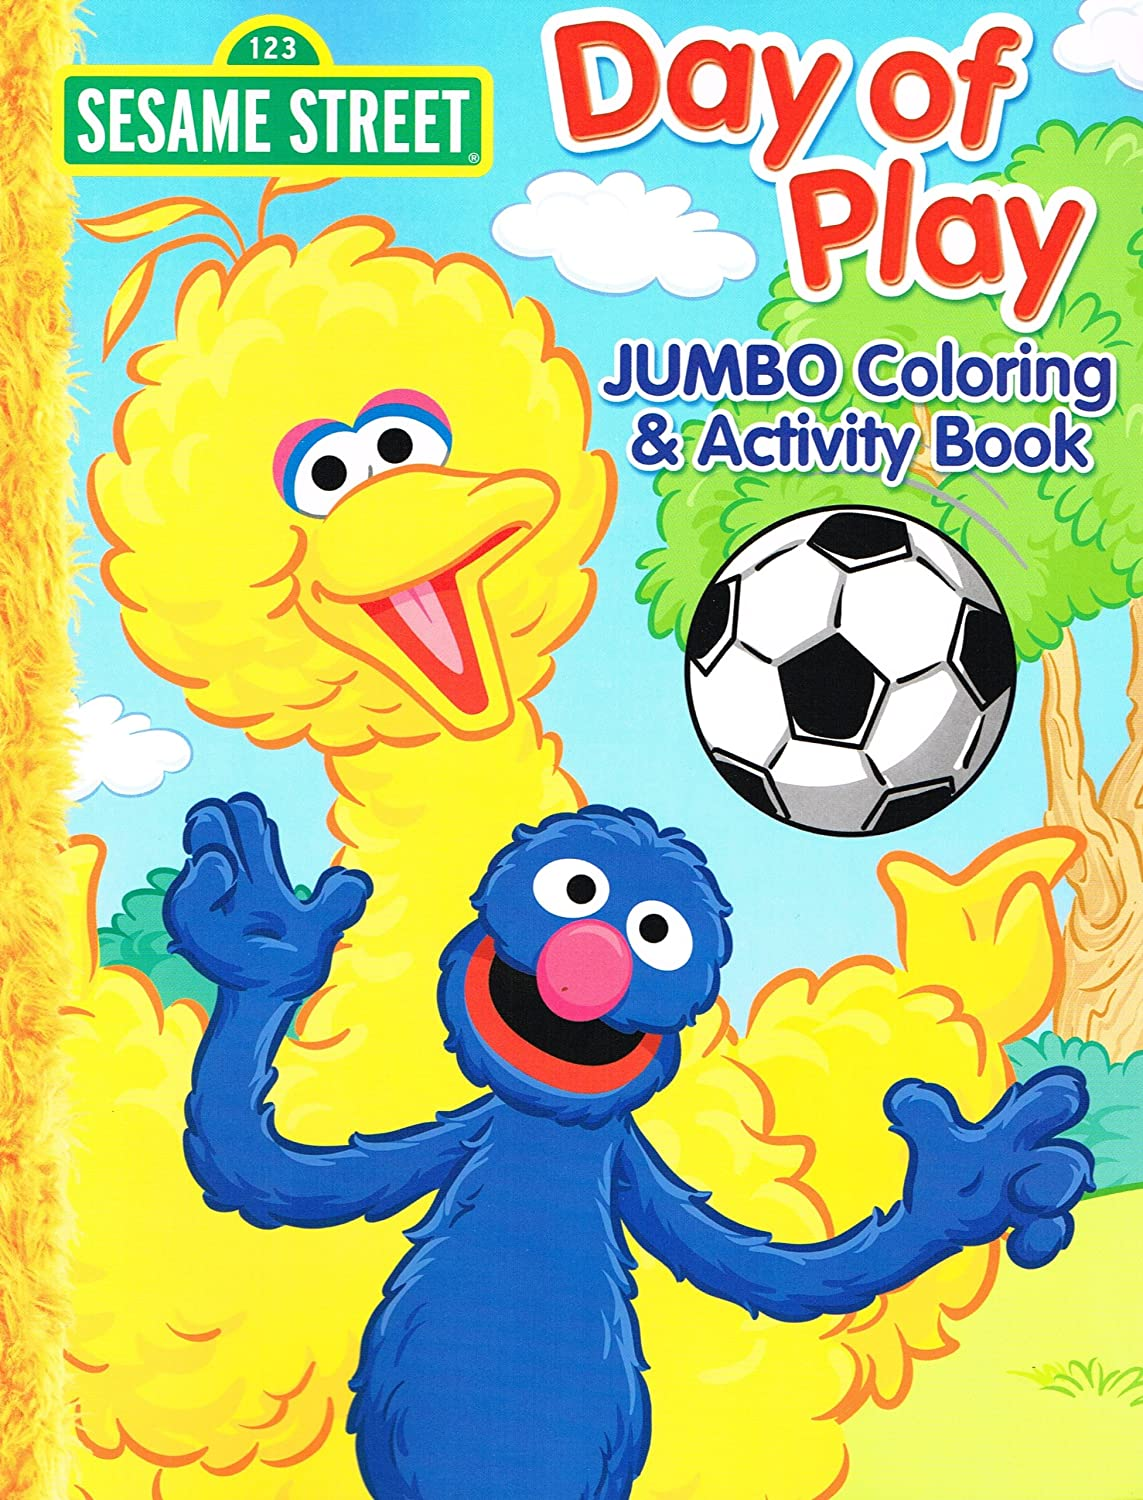 sesame street elmo jumbo coloring book day of play paper craft